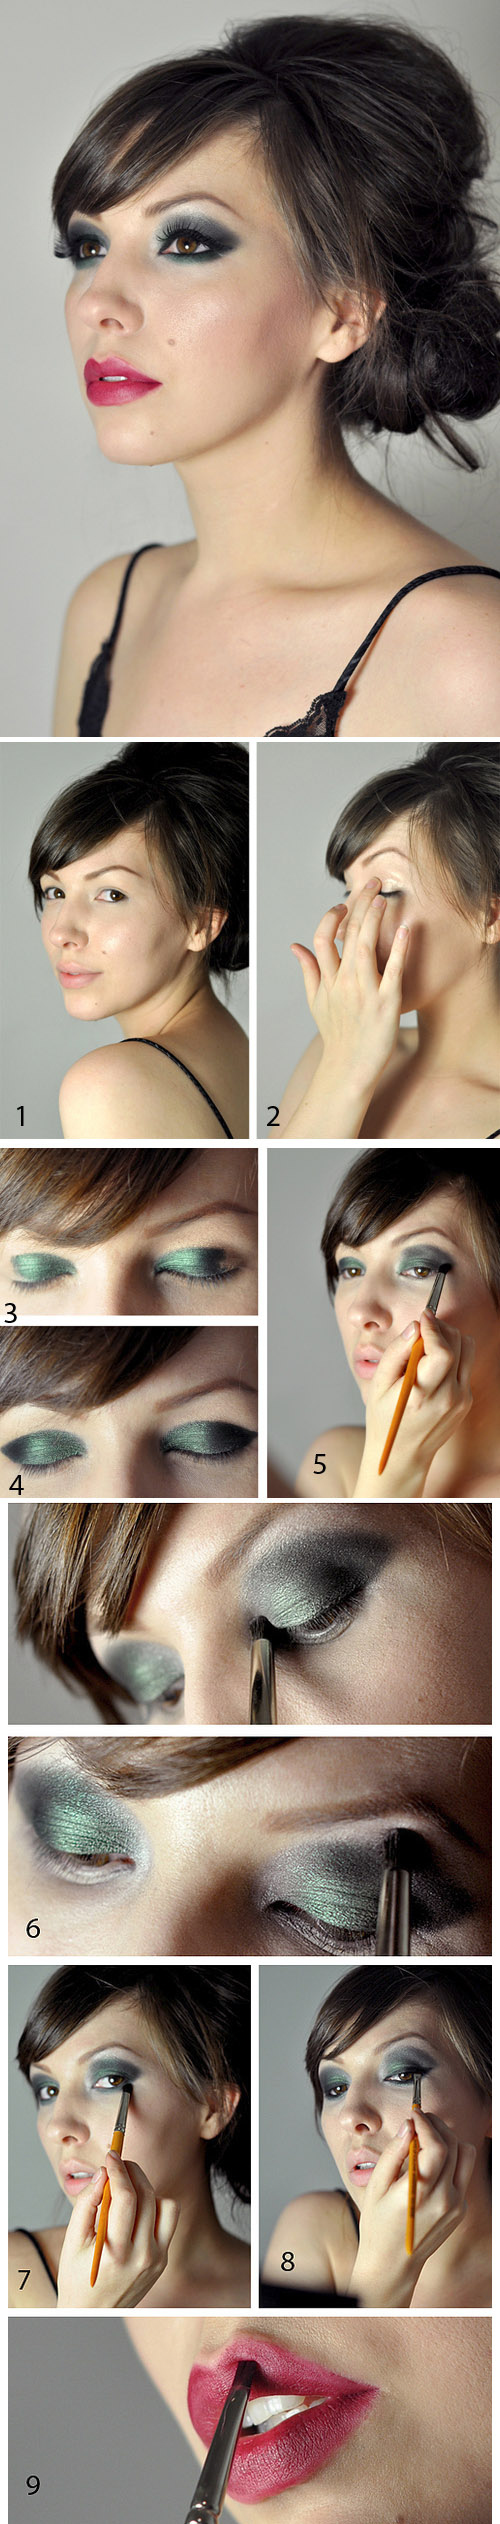 . Glamorous make-up Makeup Tutorial for Glamorous and Dramatic Holiday Looks